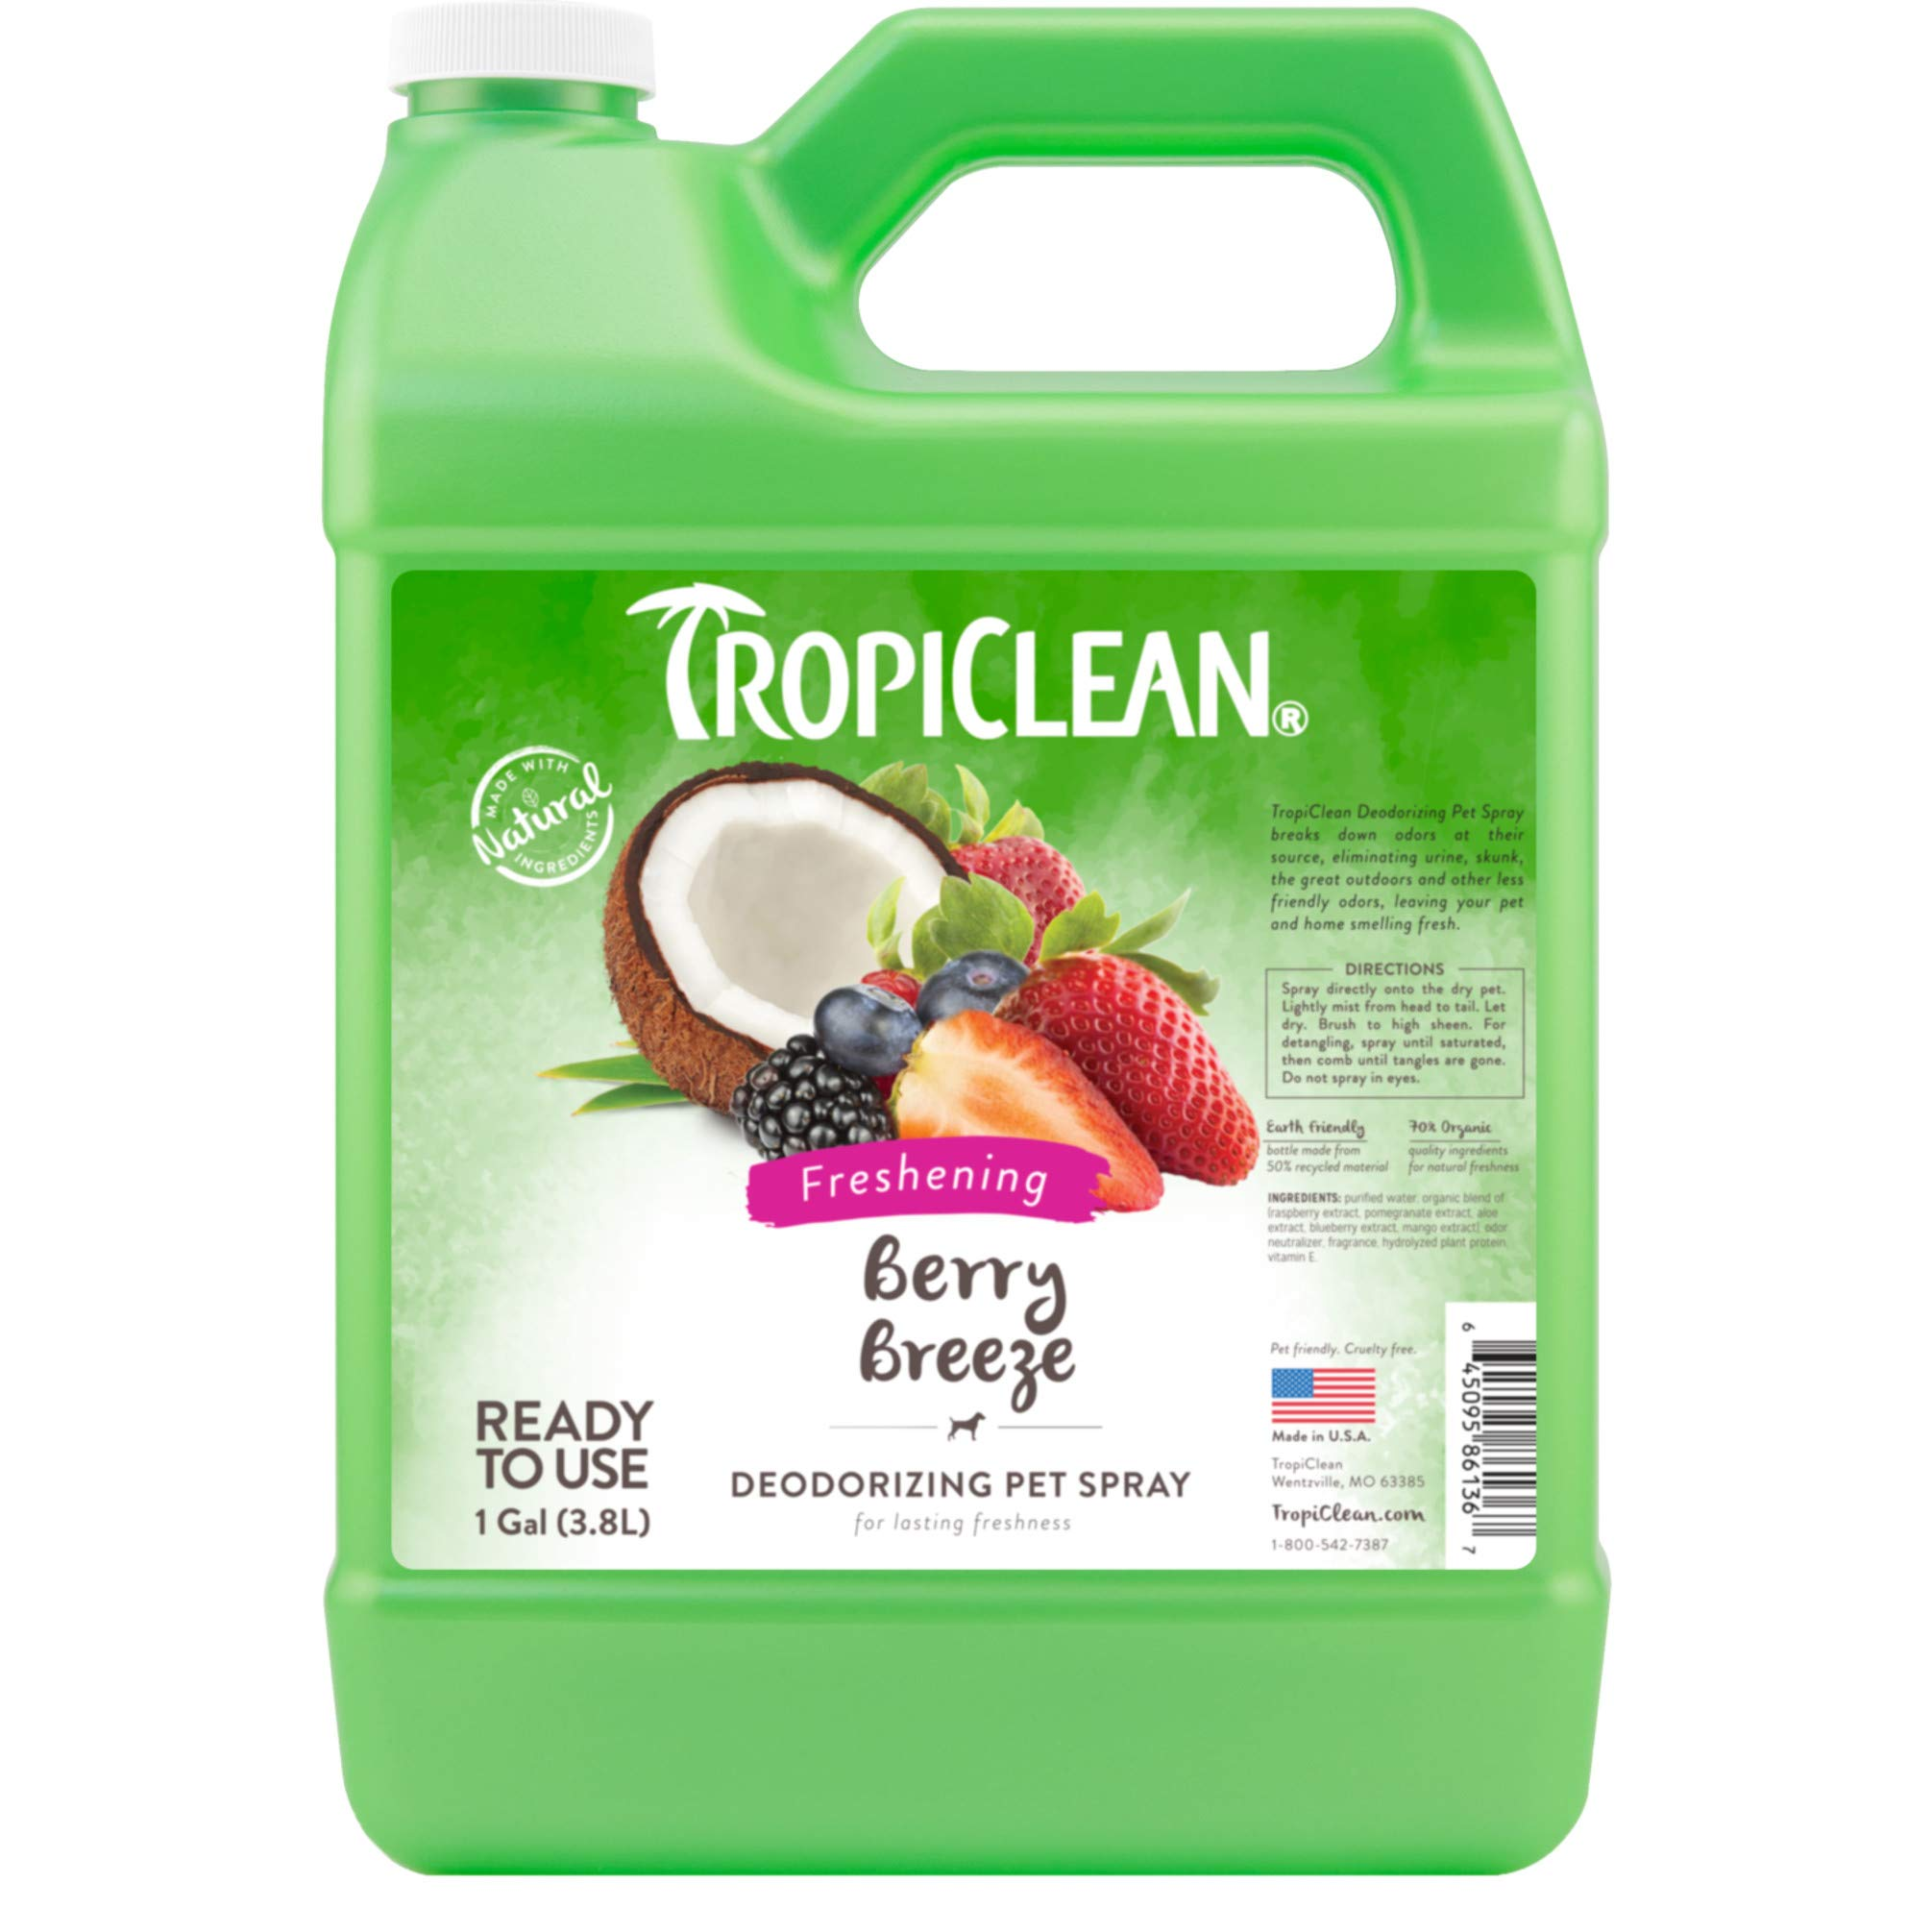 TropiClean Berry Breeze Deodorizing Spray for Pets, 1 gal, Made in USA by TropiClean